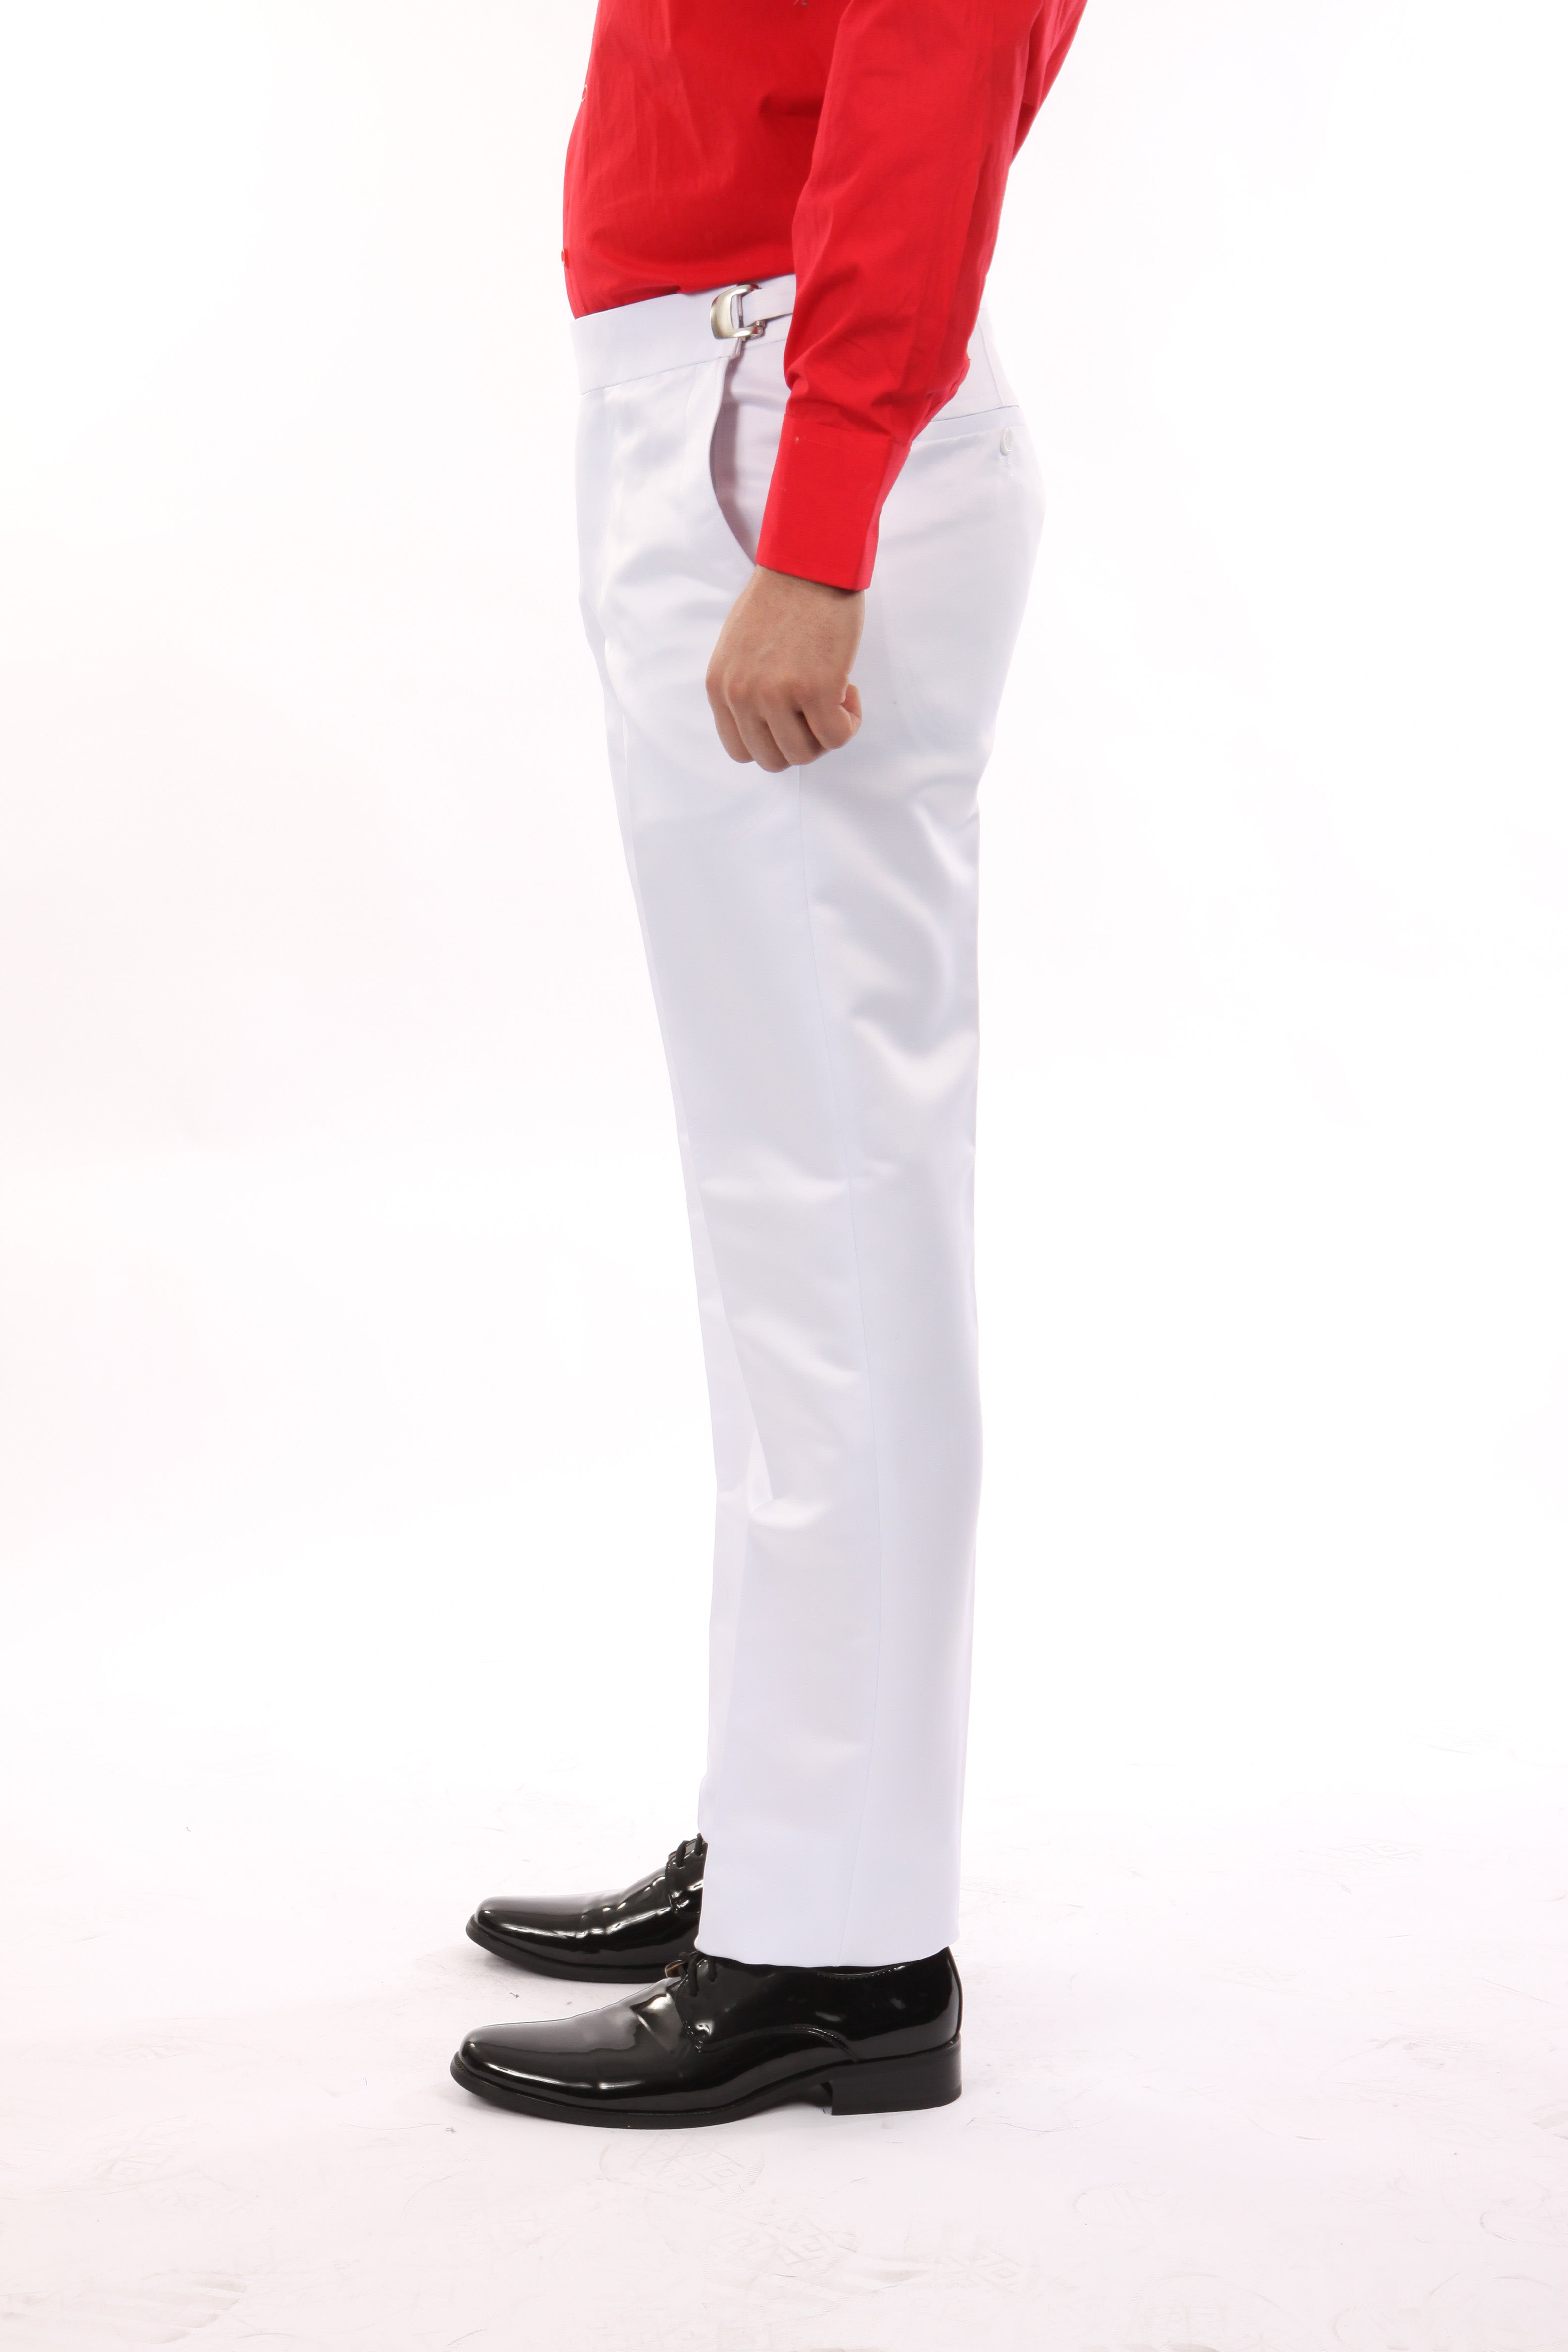 Bryan Michaels White Tuxedo Dress Pants For Men